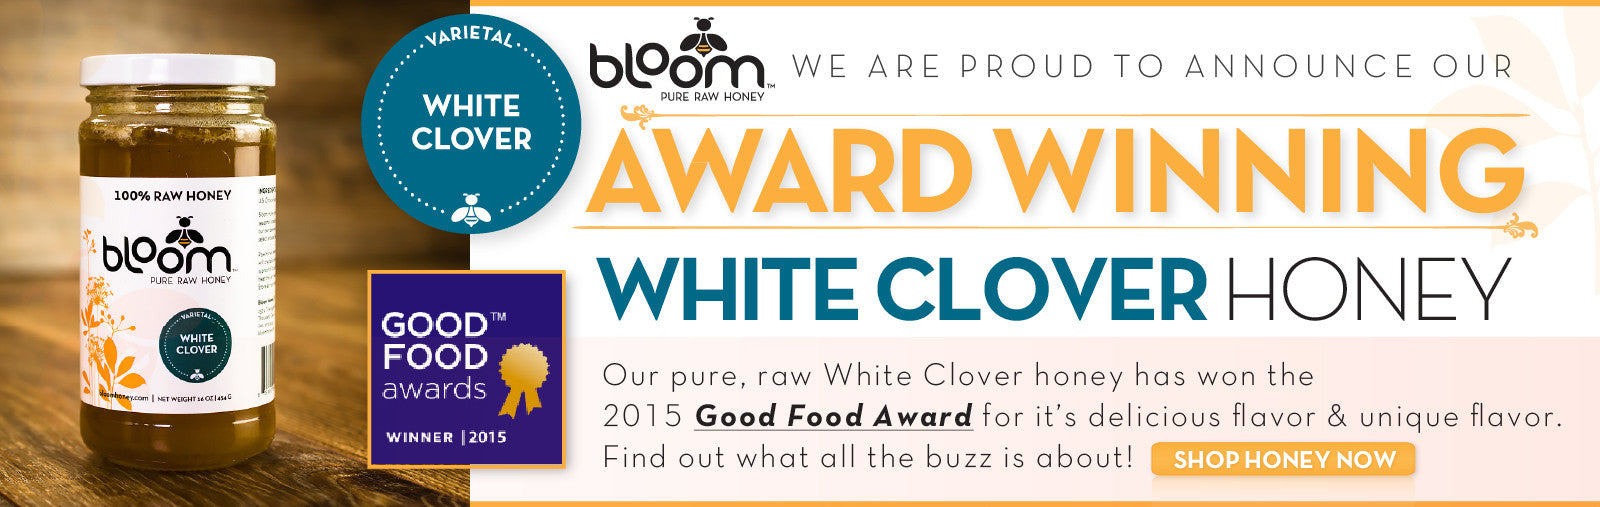 White Clover Wins Good Food Award